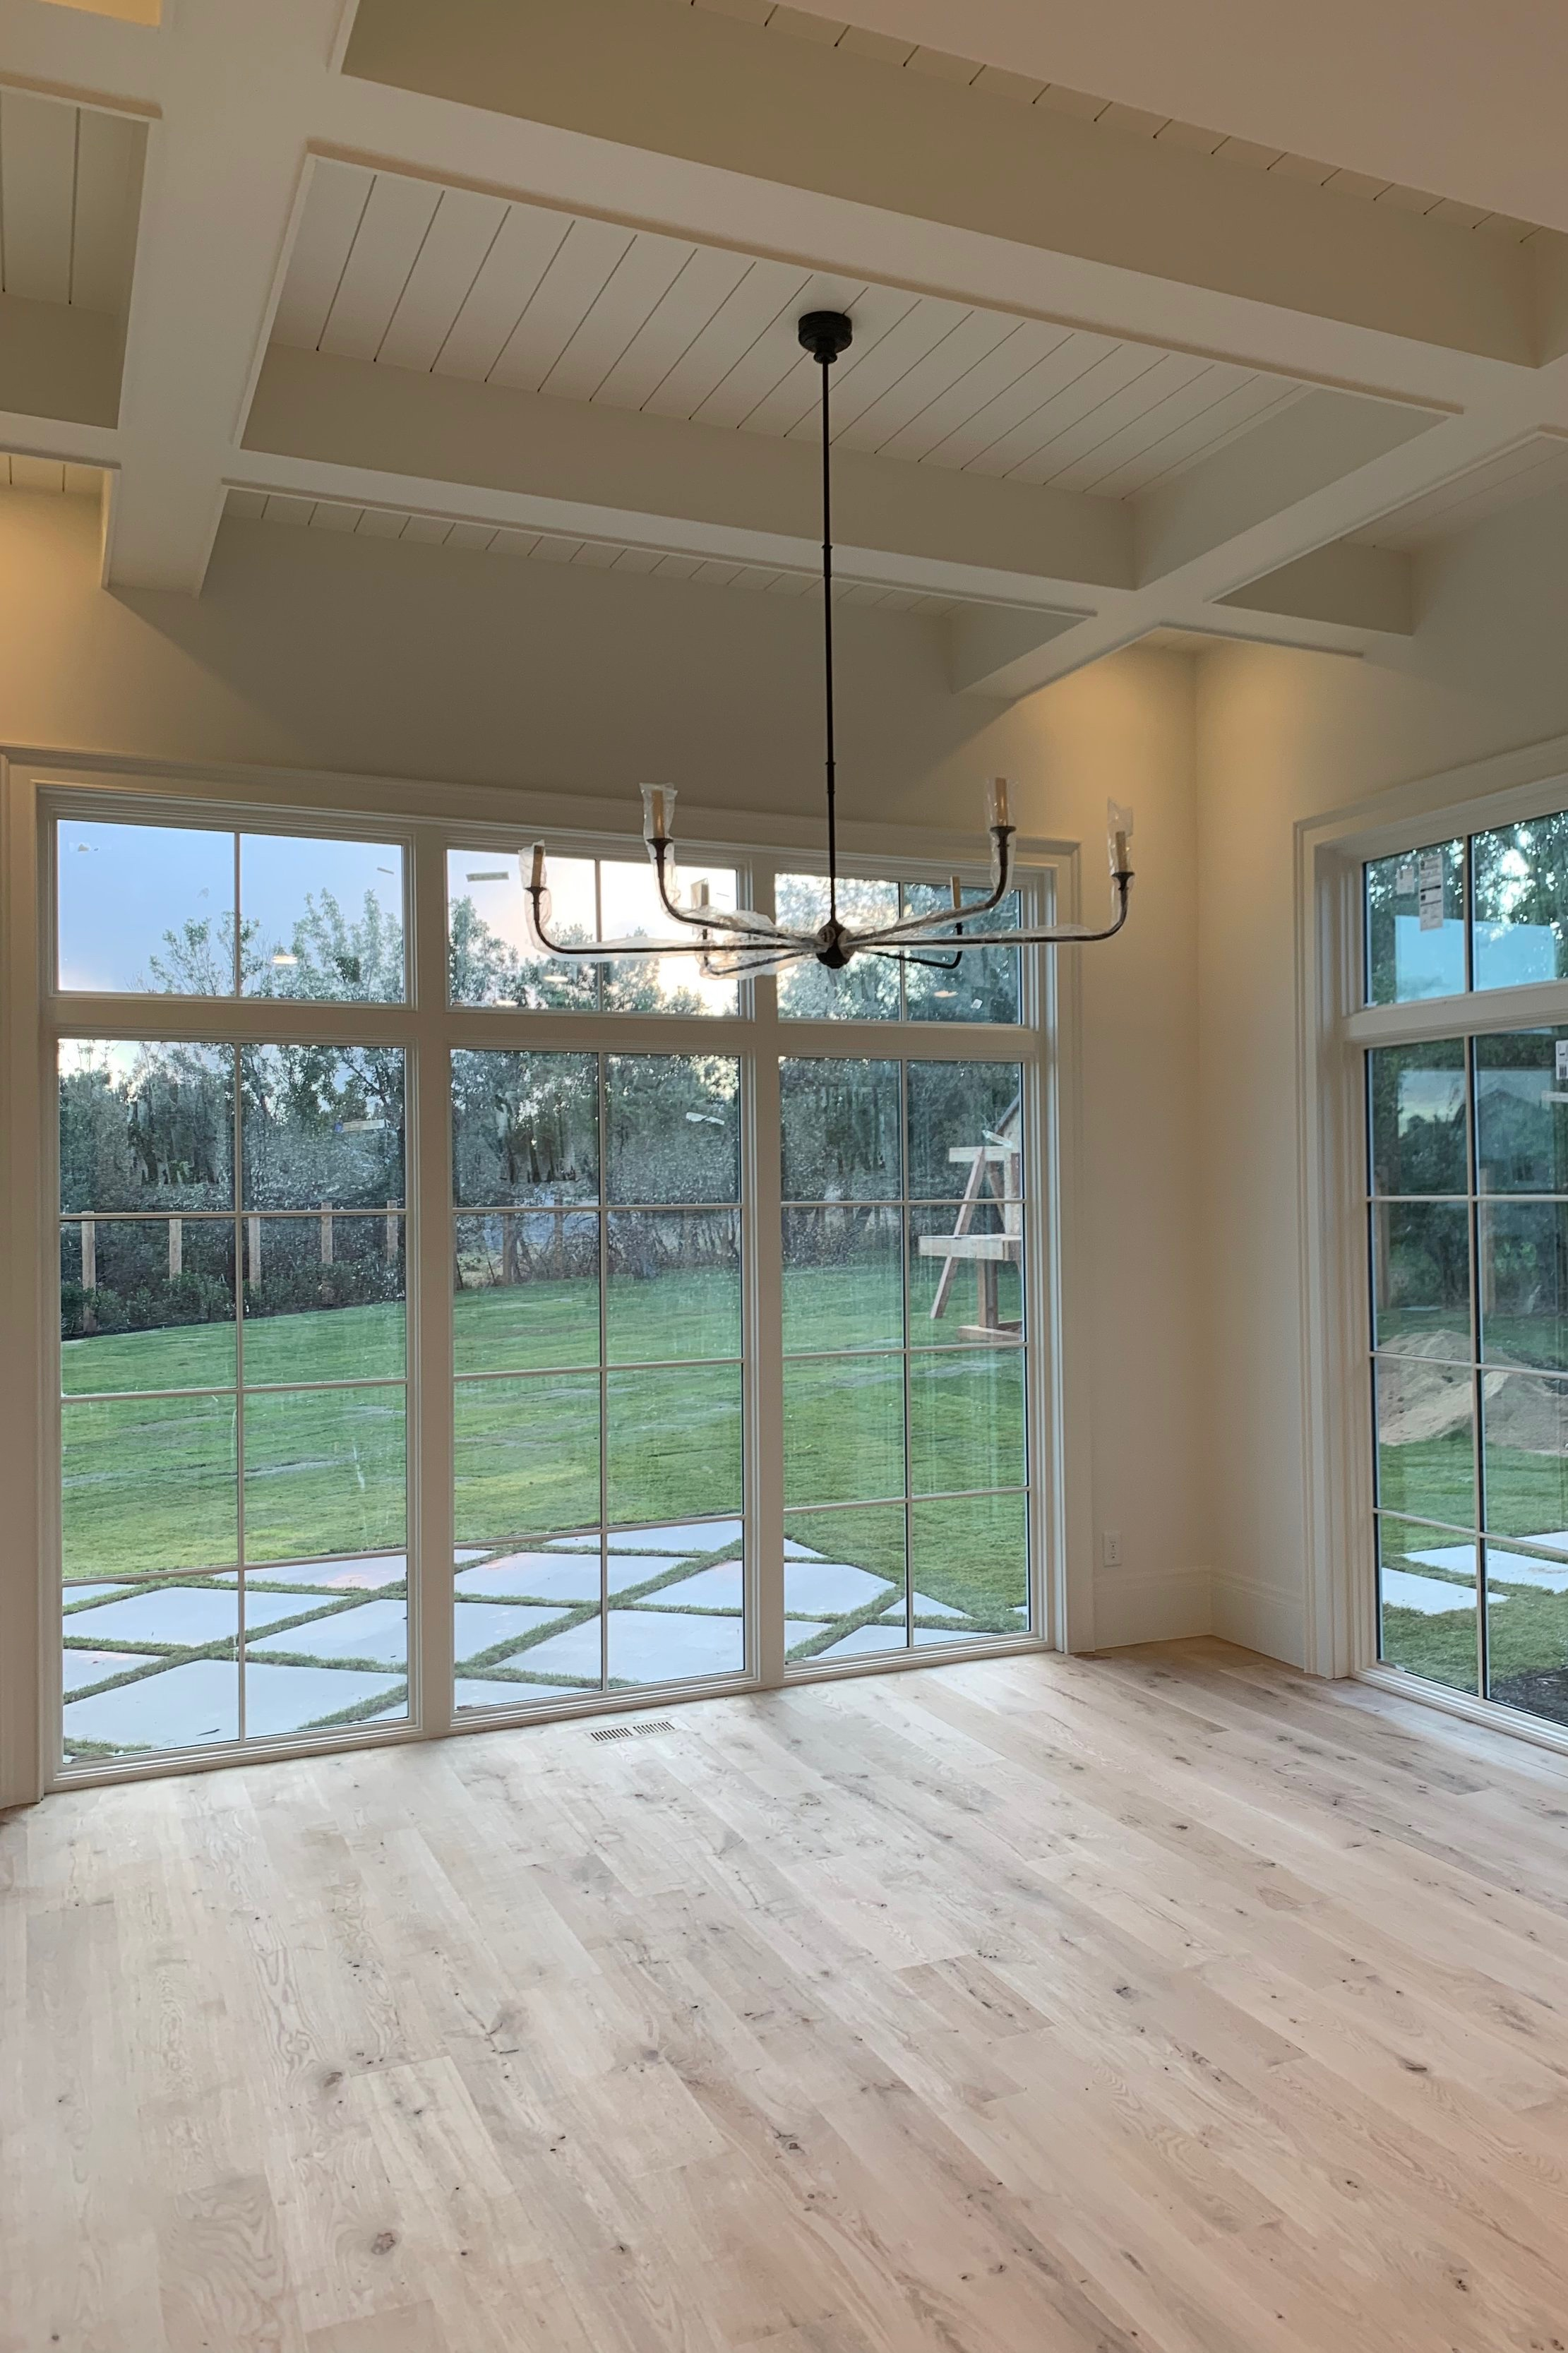 I love being able to look out the windows of our dining room and see where our trampoline and swing set are going to be! Beautiful ceiling treatments by  Metrie  make it even better.